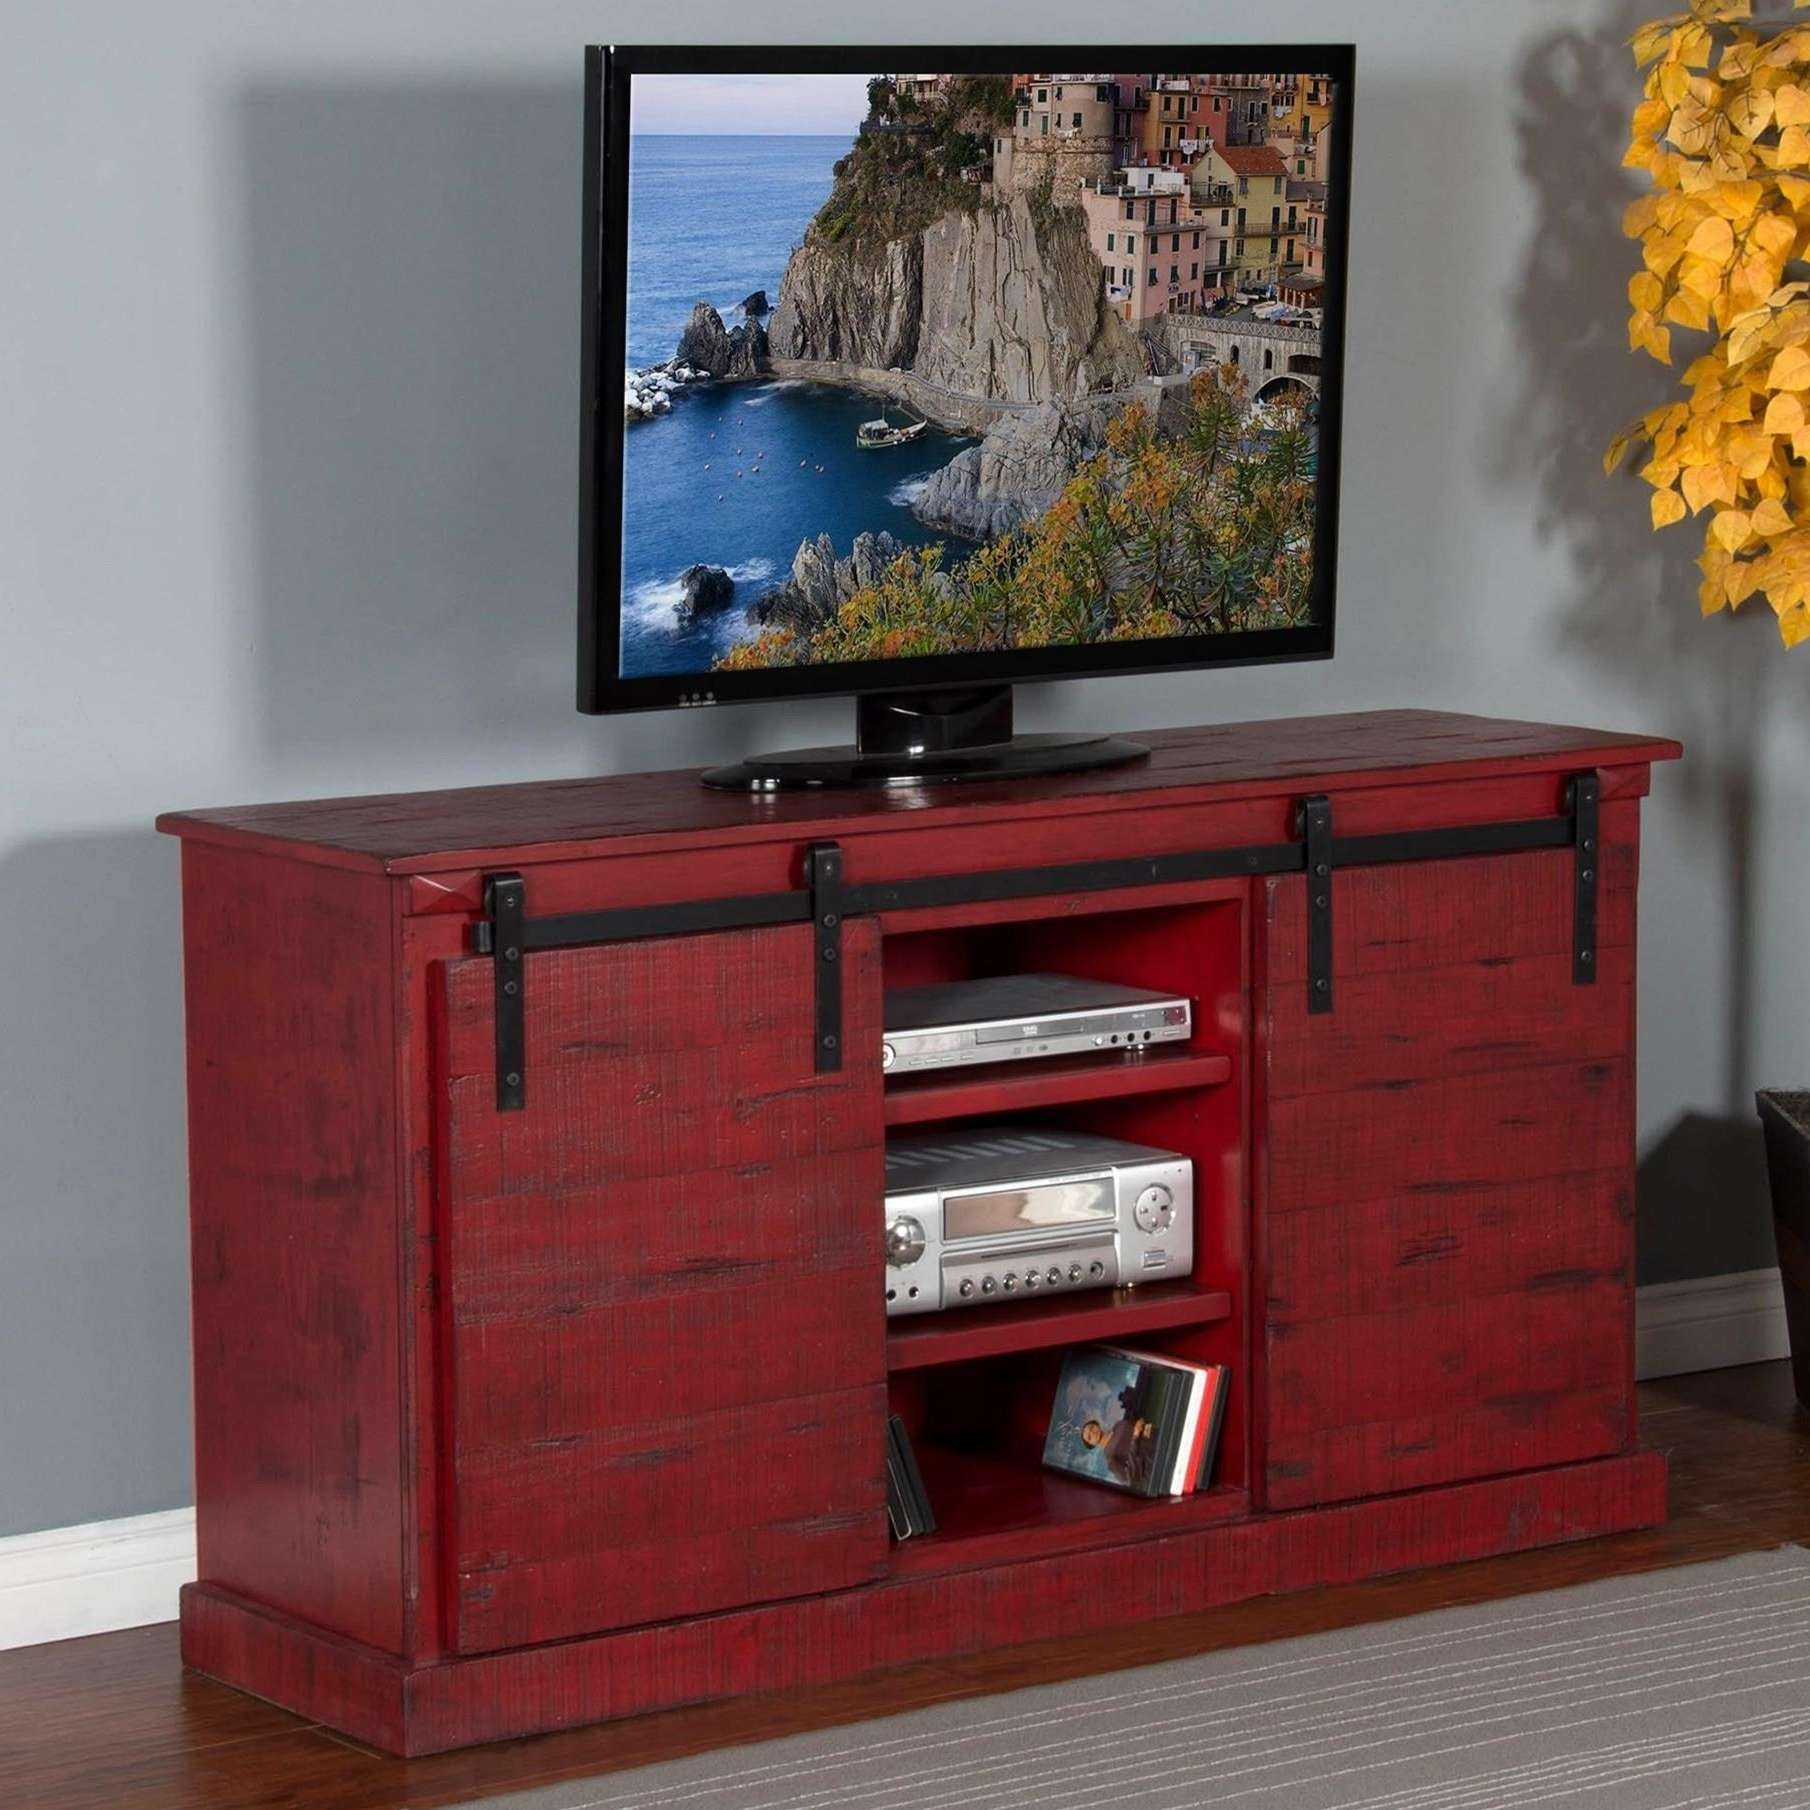 Shop Tv Stands | Wolf And Gardiner Wolf Furniture Inside Red Tv Stands (View 12 of 15)